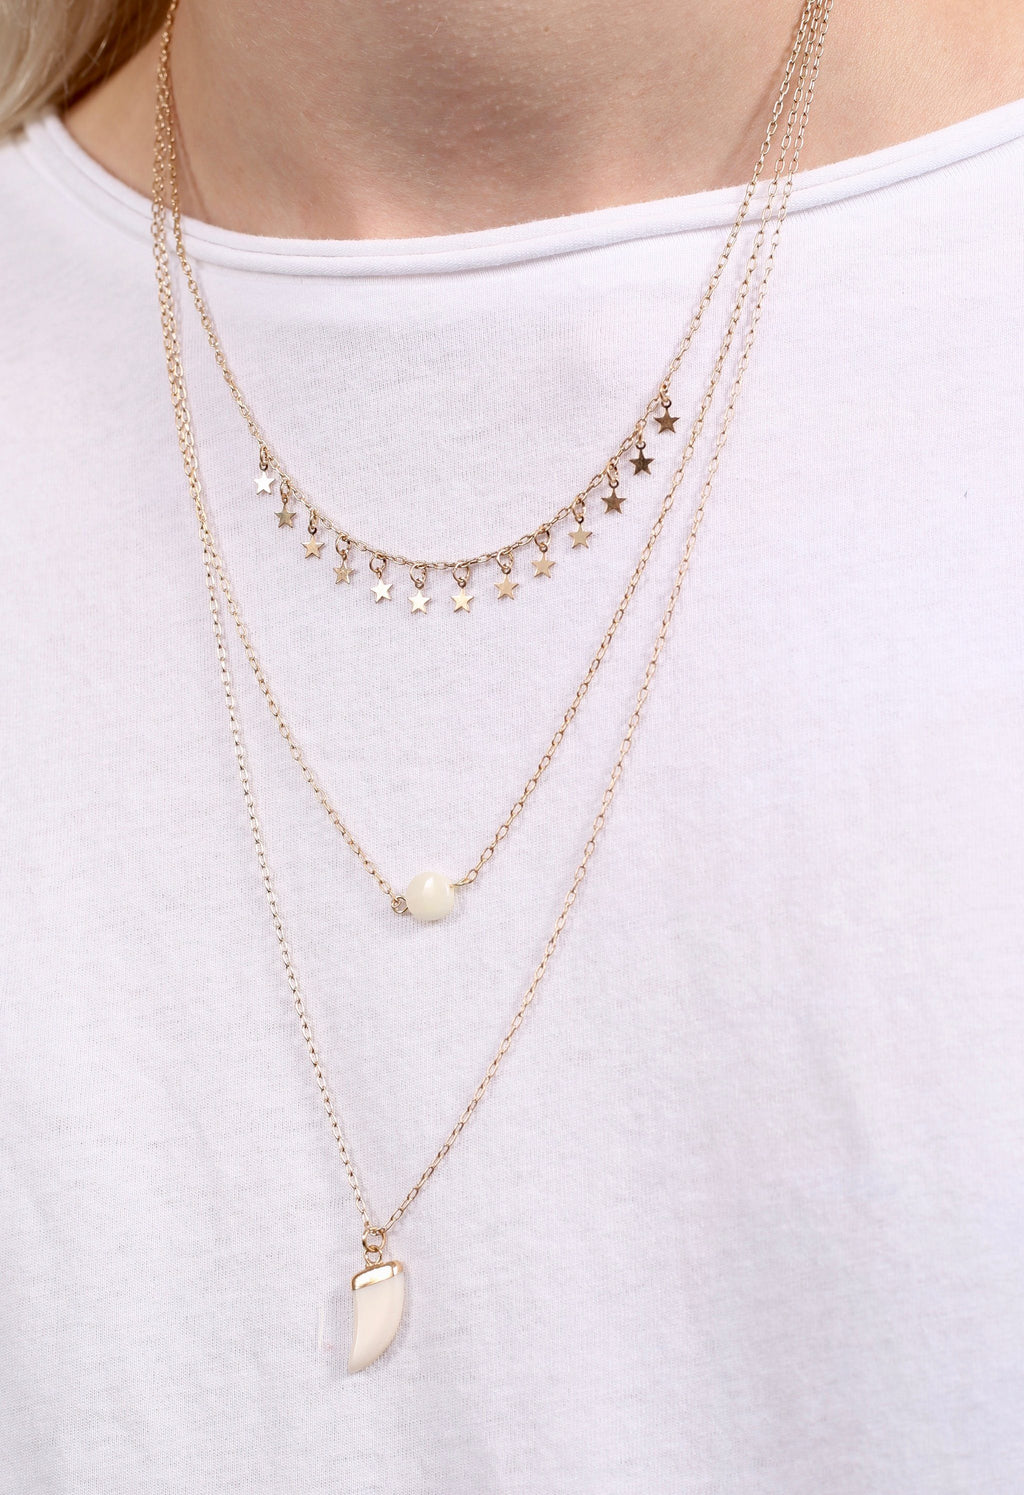 Alta Vista Horn and Star Layered Necklace Gold - Caroline Hill